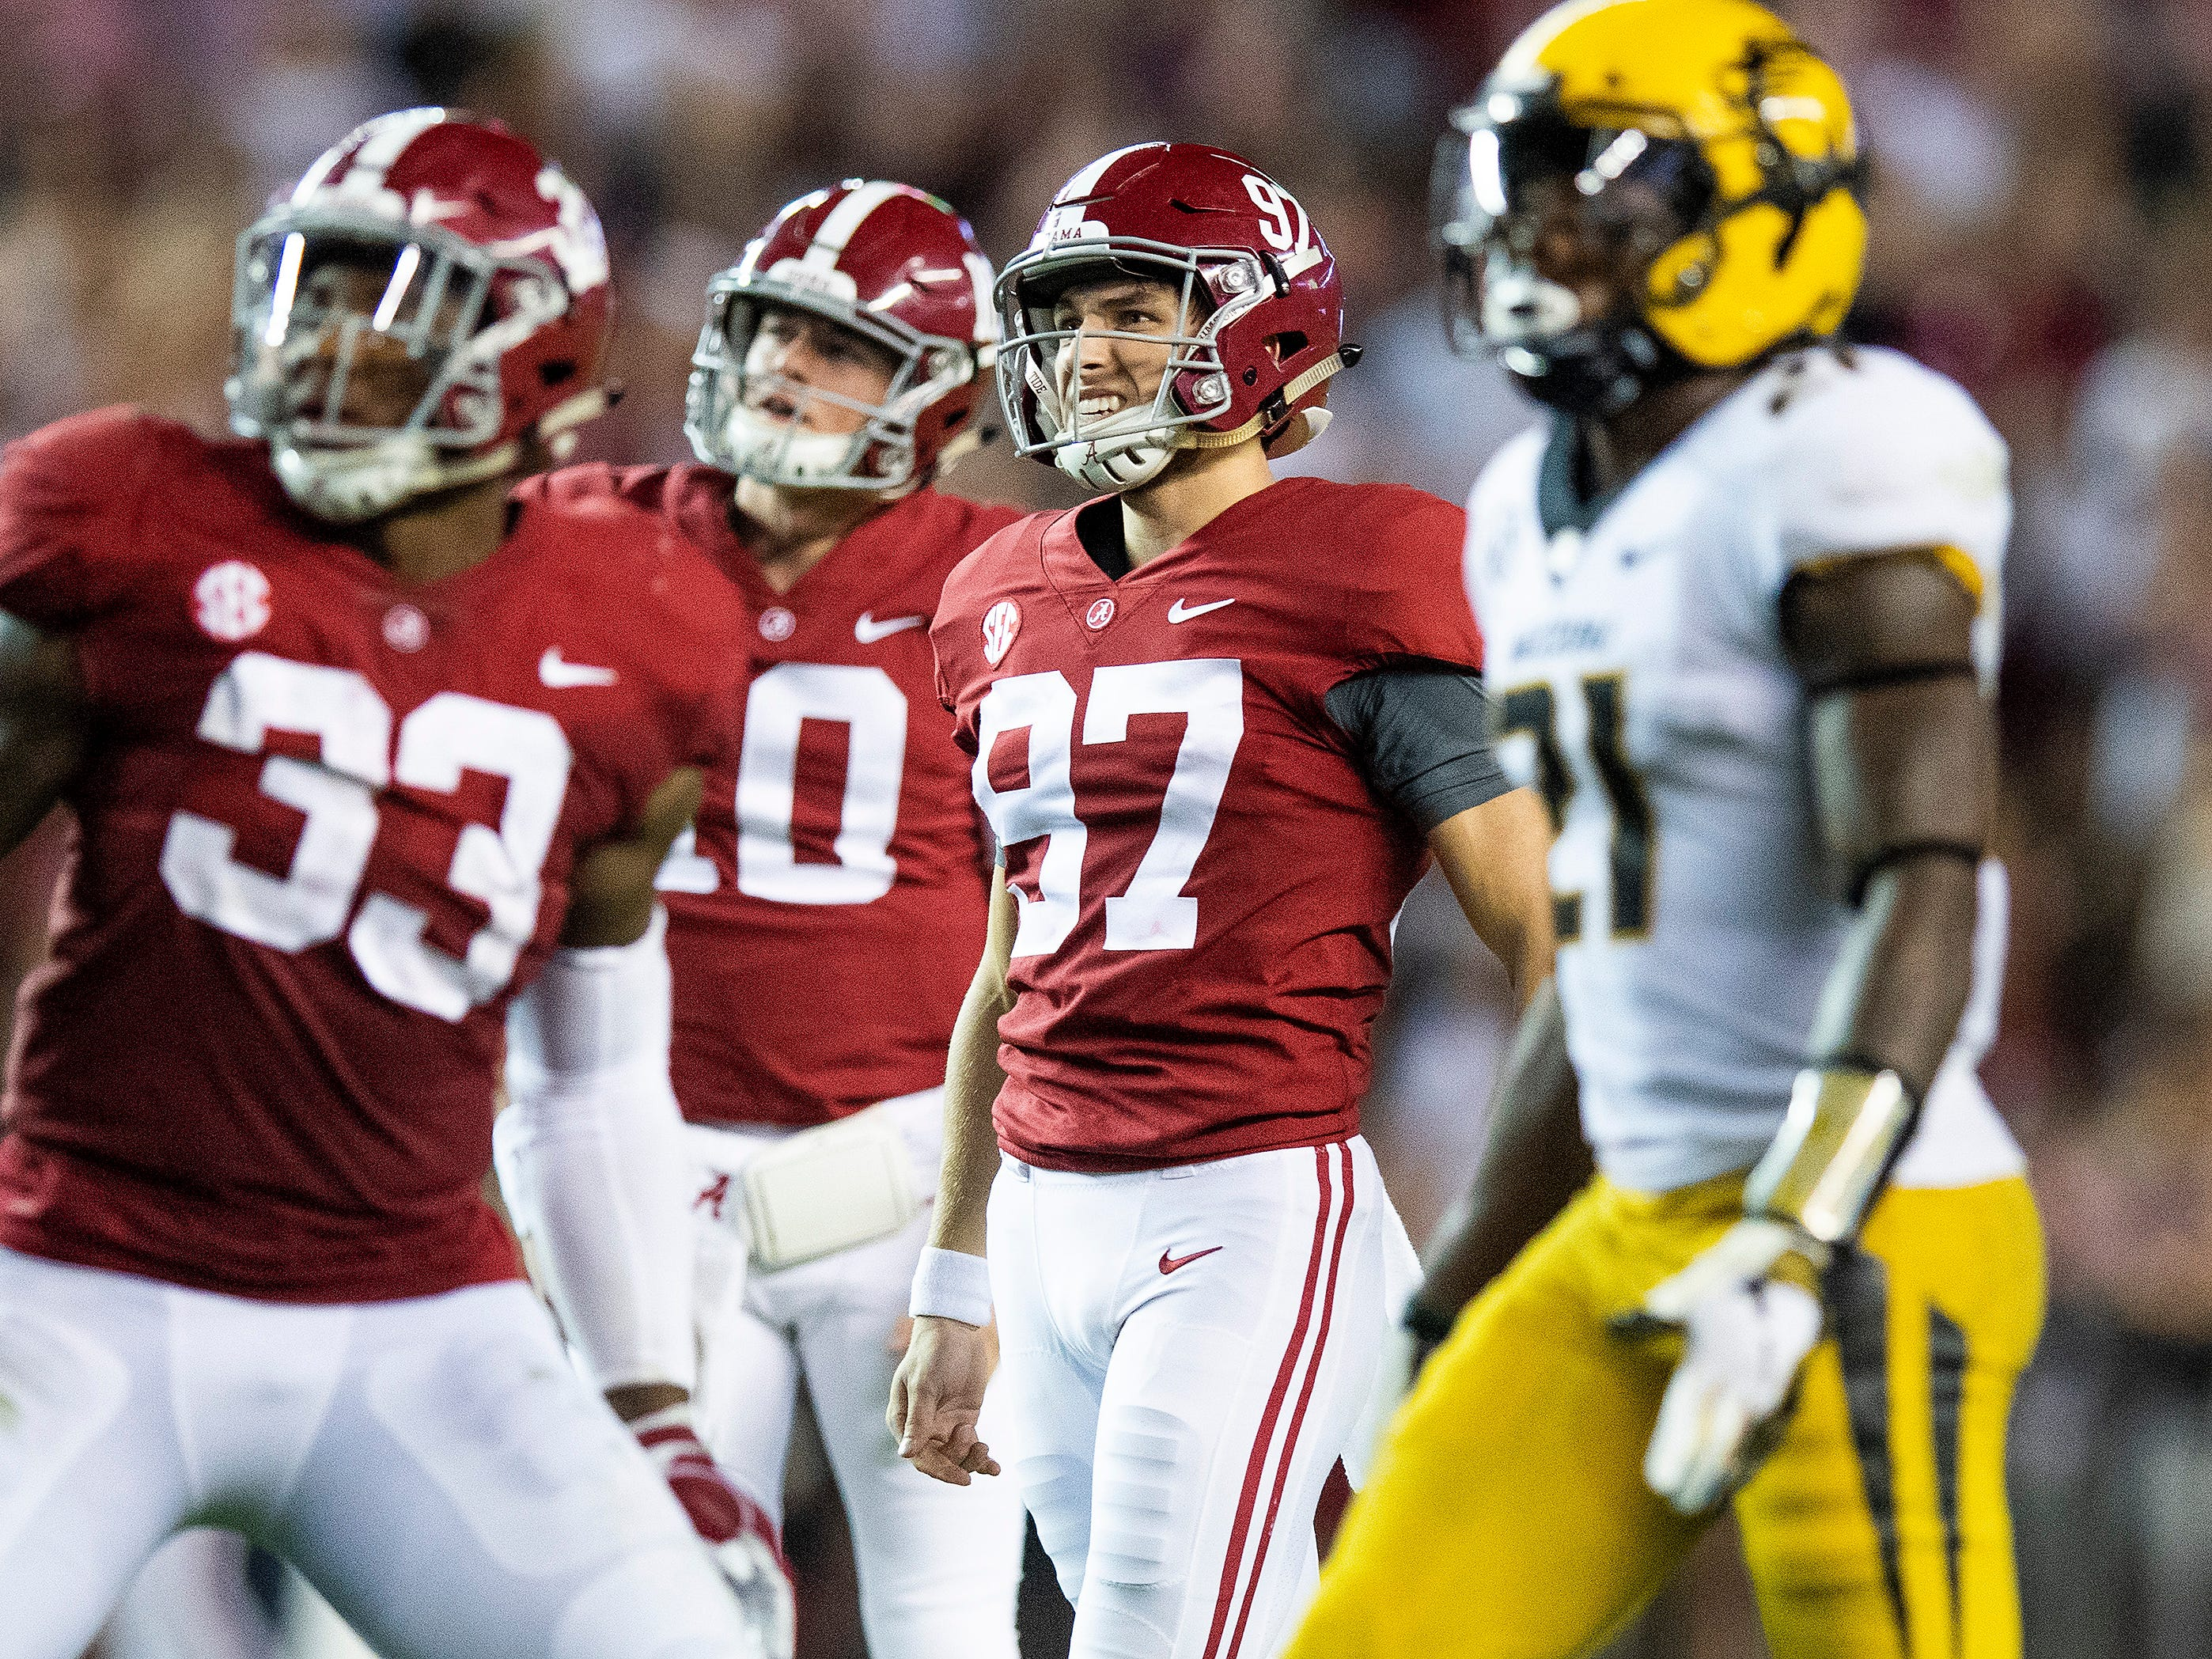 Alabama kicker Joseph Bulovas (97) reacts to missing a long field goal against Missouri in second half action at Bryant Denny Stadium in Tuscaloosa, Ala., on Saturday October 13, 2018.